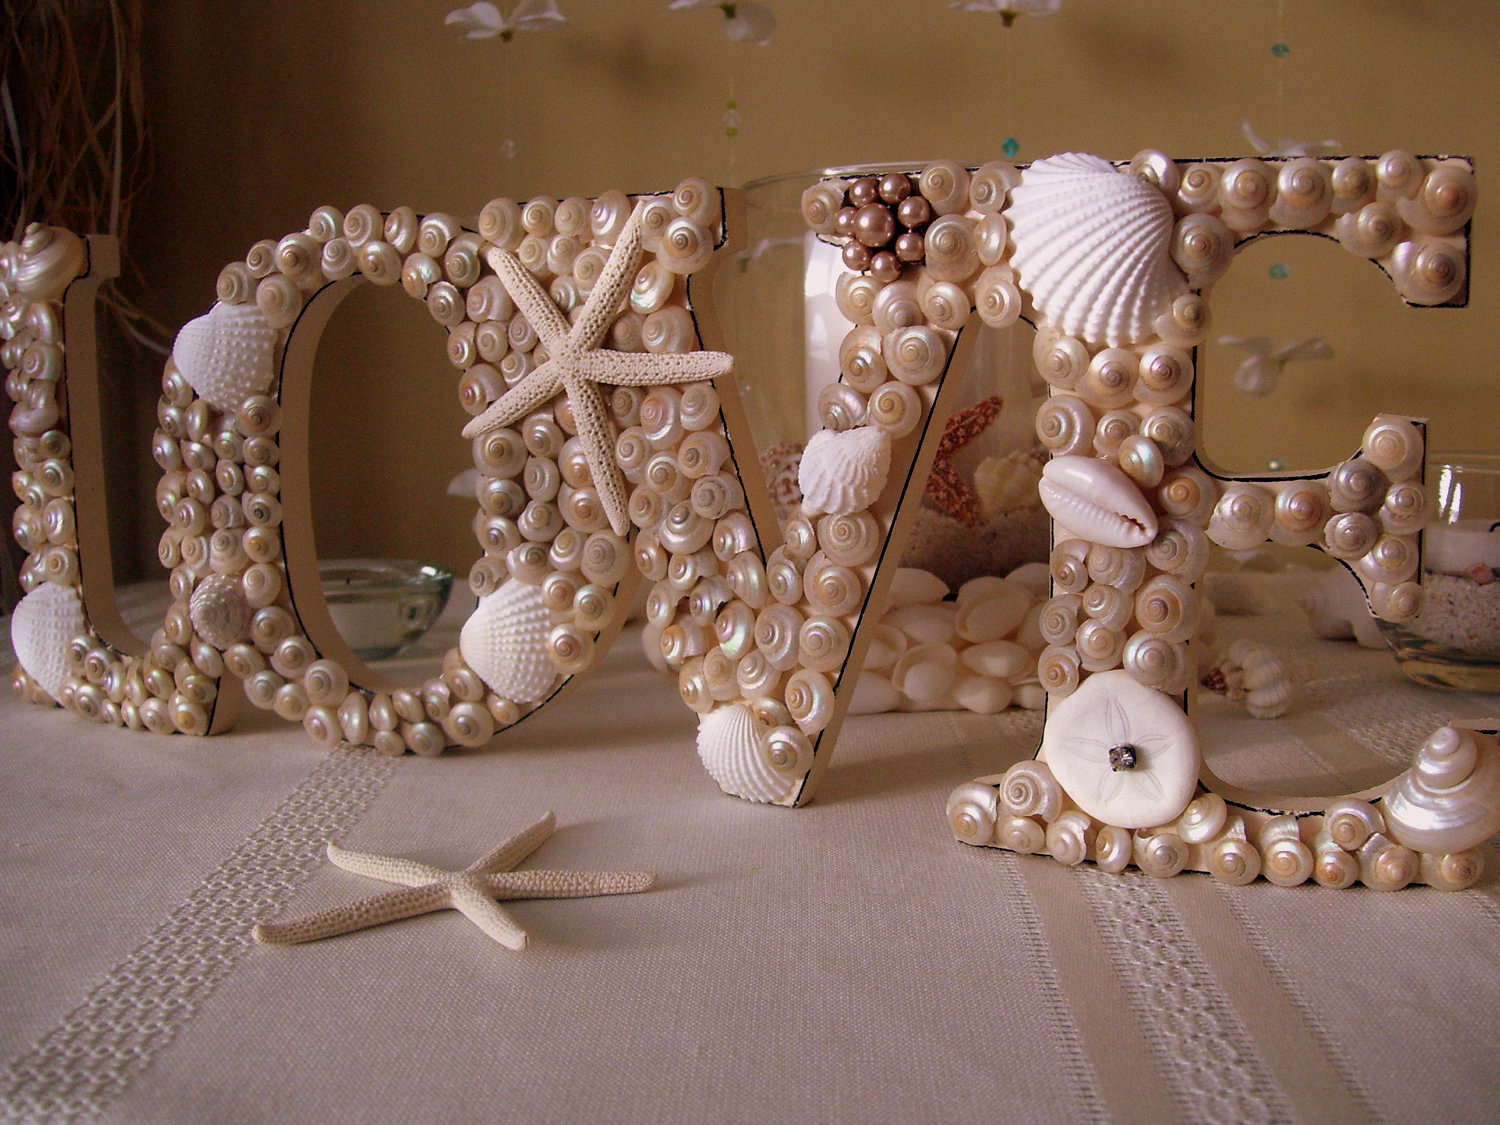 Seashell covered love sign beach wedding diy : seashells decorating ideas - www.pureclipart.com